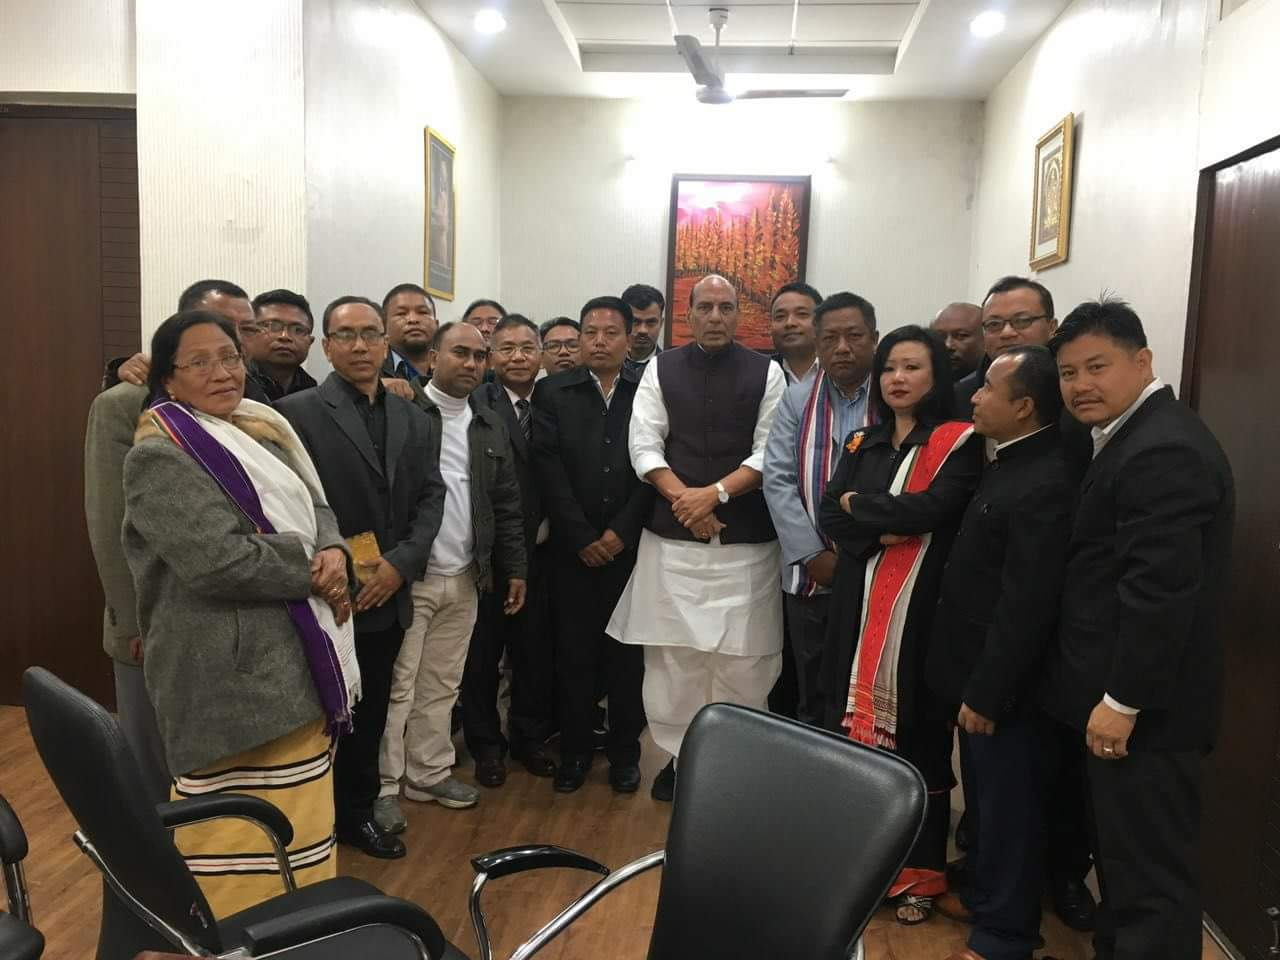 The civil society delegation with home minister Rajnath Singh. By special arrangement